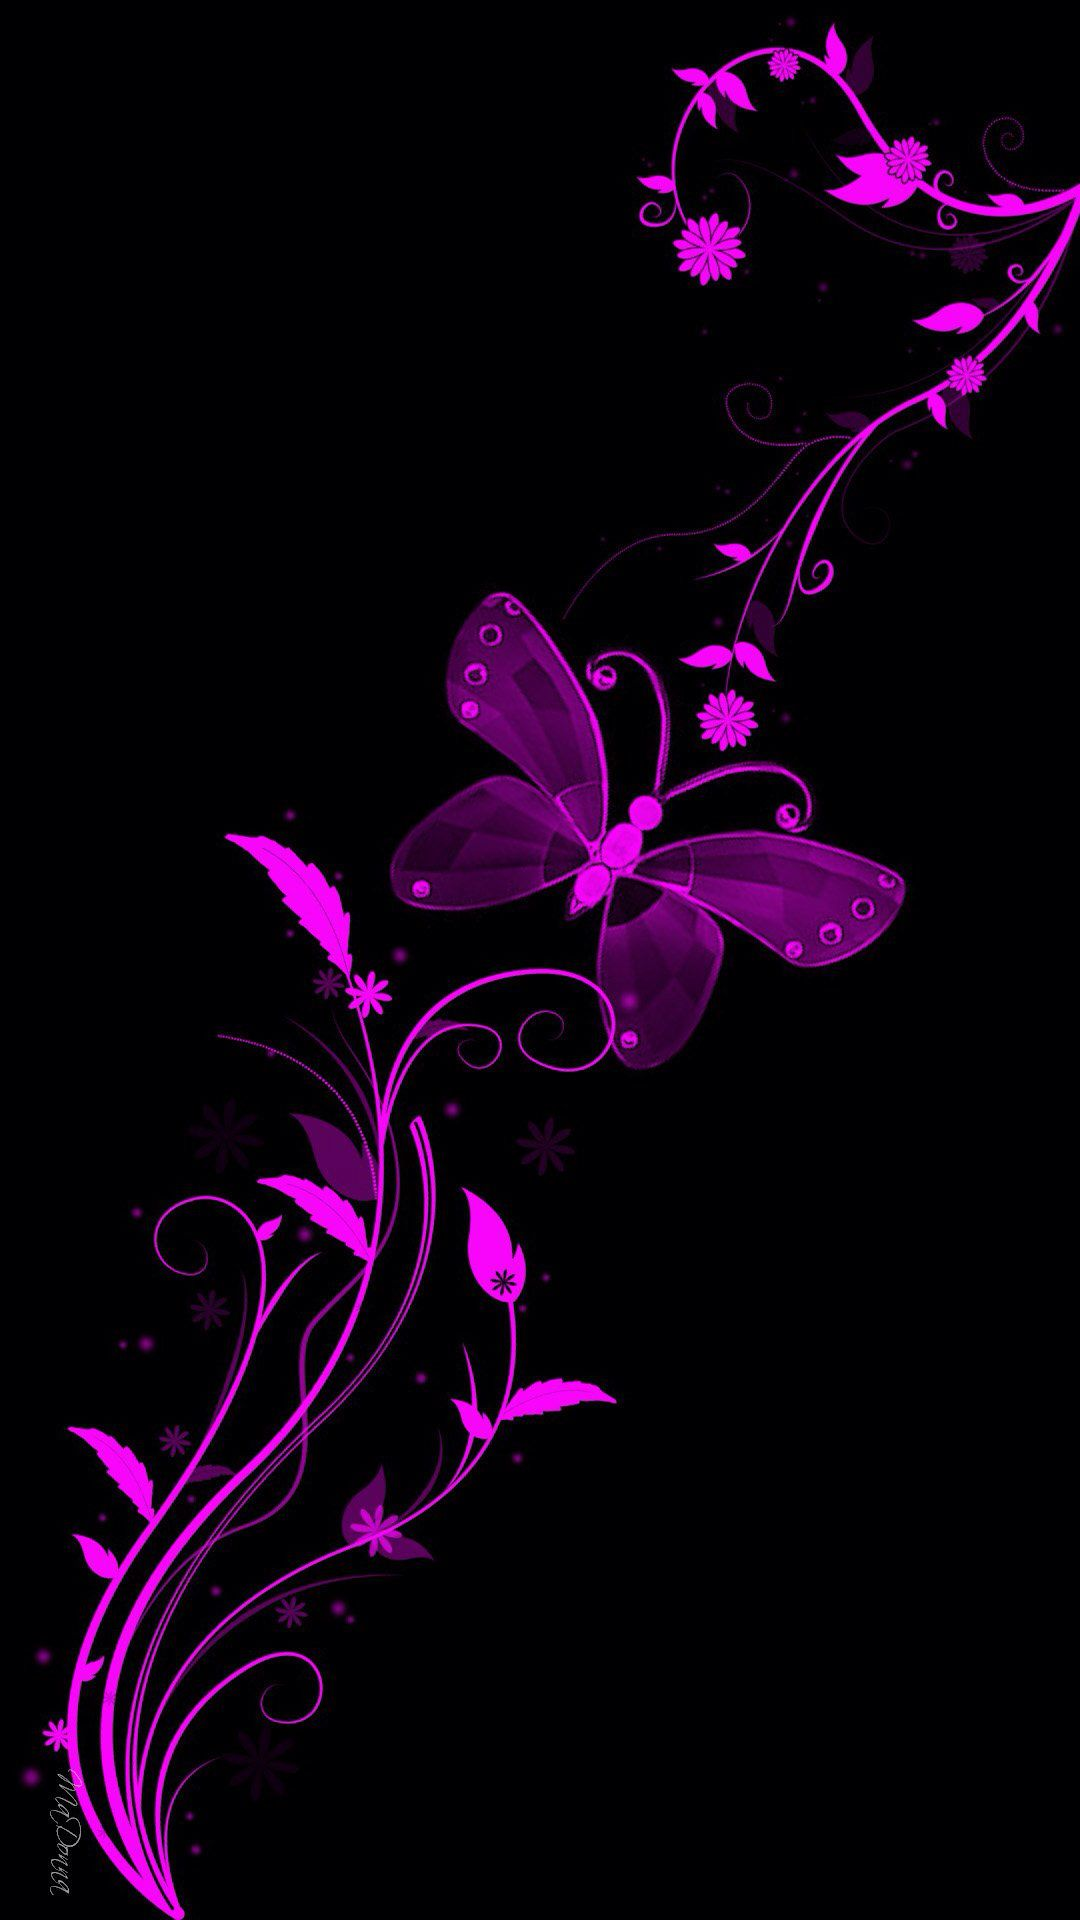 Black And Purple Butterfly Butterfly Wallpaper Black And Purple